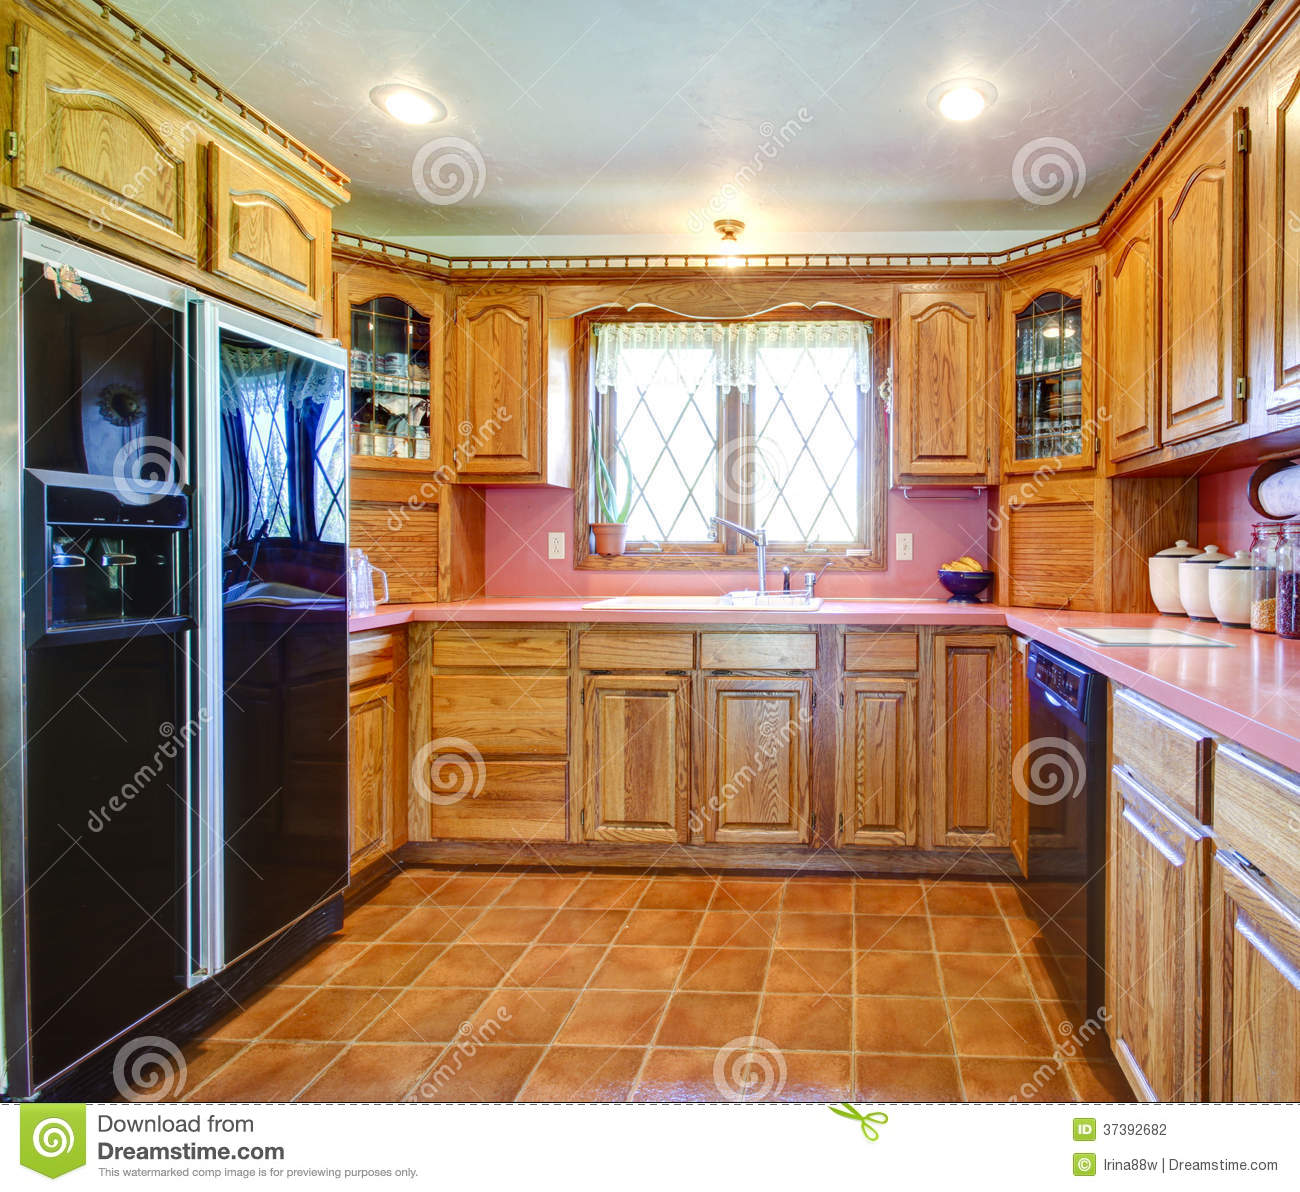 Orange Kitchen Room With White Cabinets Stock Image: Farmhouse Kitchen Room With Wood Cabinets And Pink